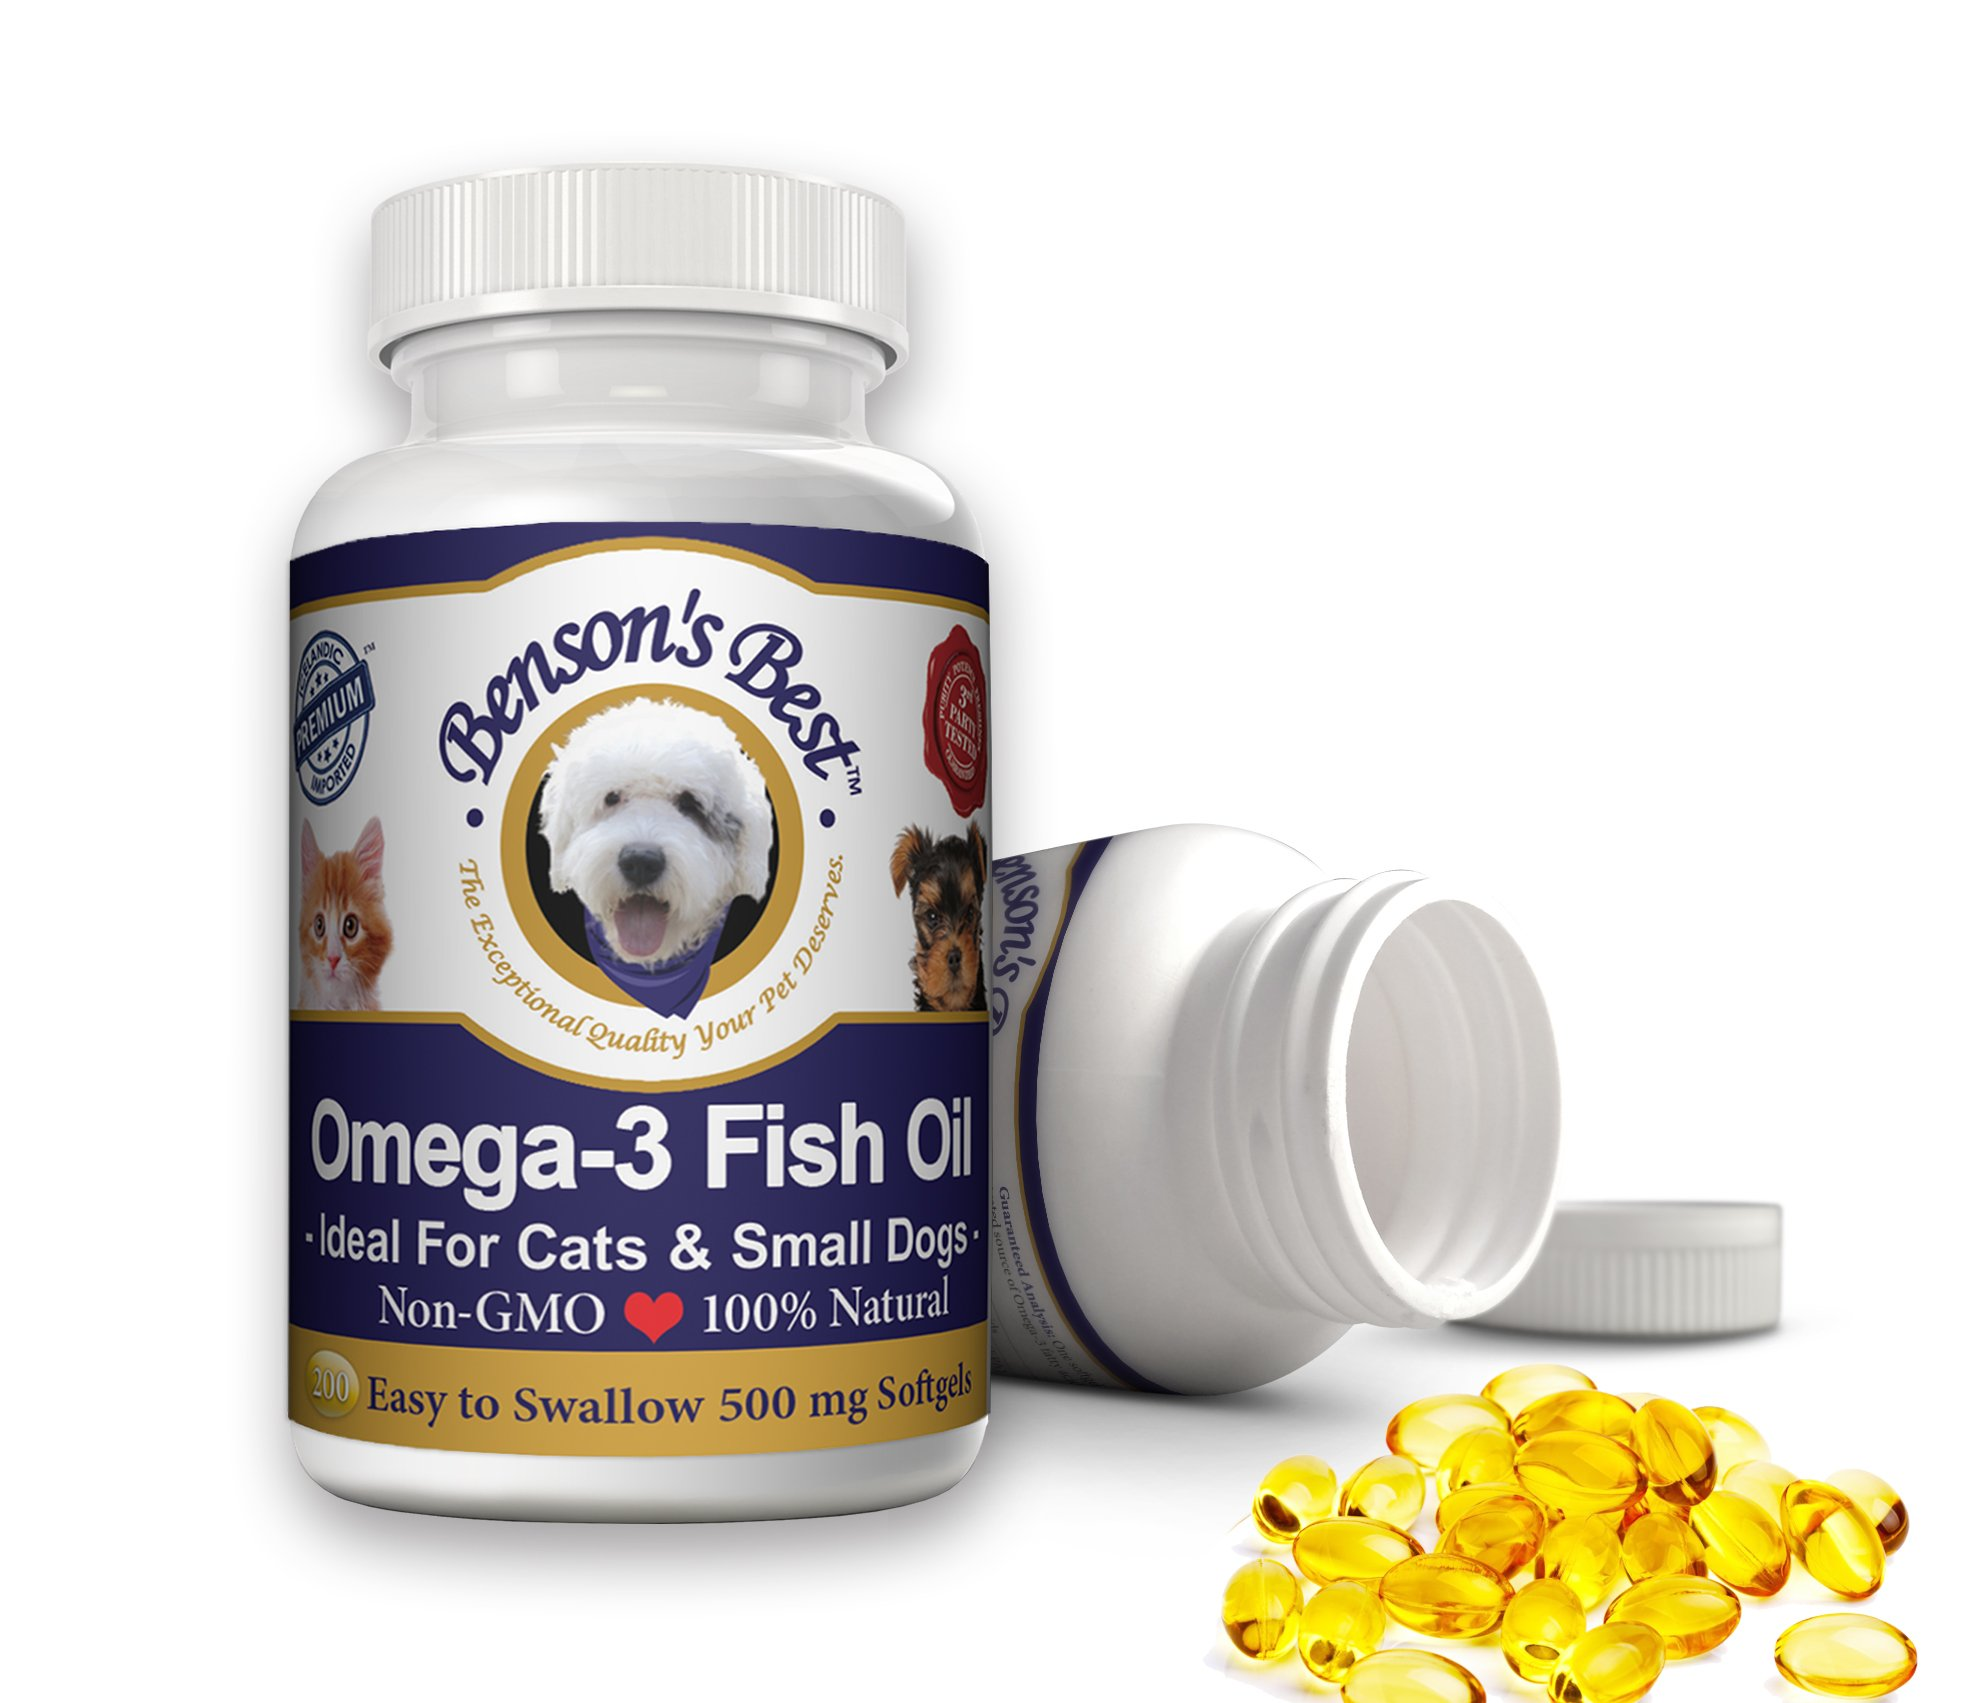 Benson's Best Omega-3 Fish Oil for Cats & Small Dogs. Provides 43% More Omega-3 than Salmon Oil! 100% Pure, Natural & Non-GMO, 200 Easy To Swallow 500 mg Softgel Capsules: Ideal for Cats & Small Dogs! by Benson's Best